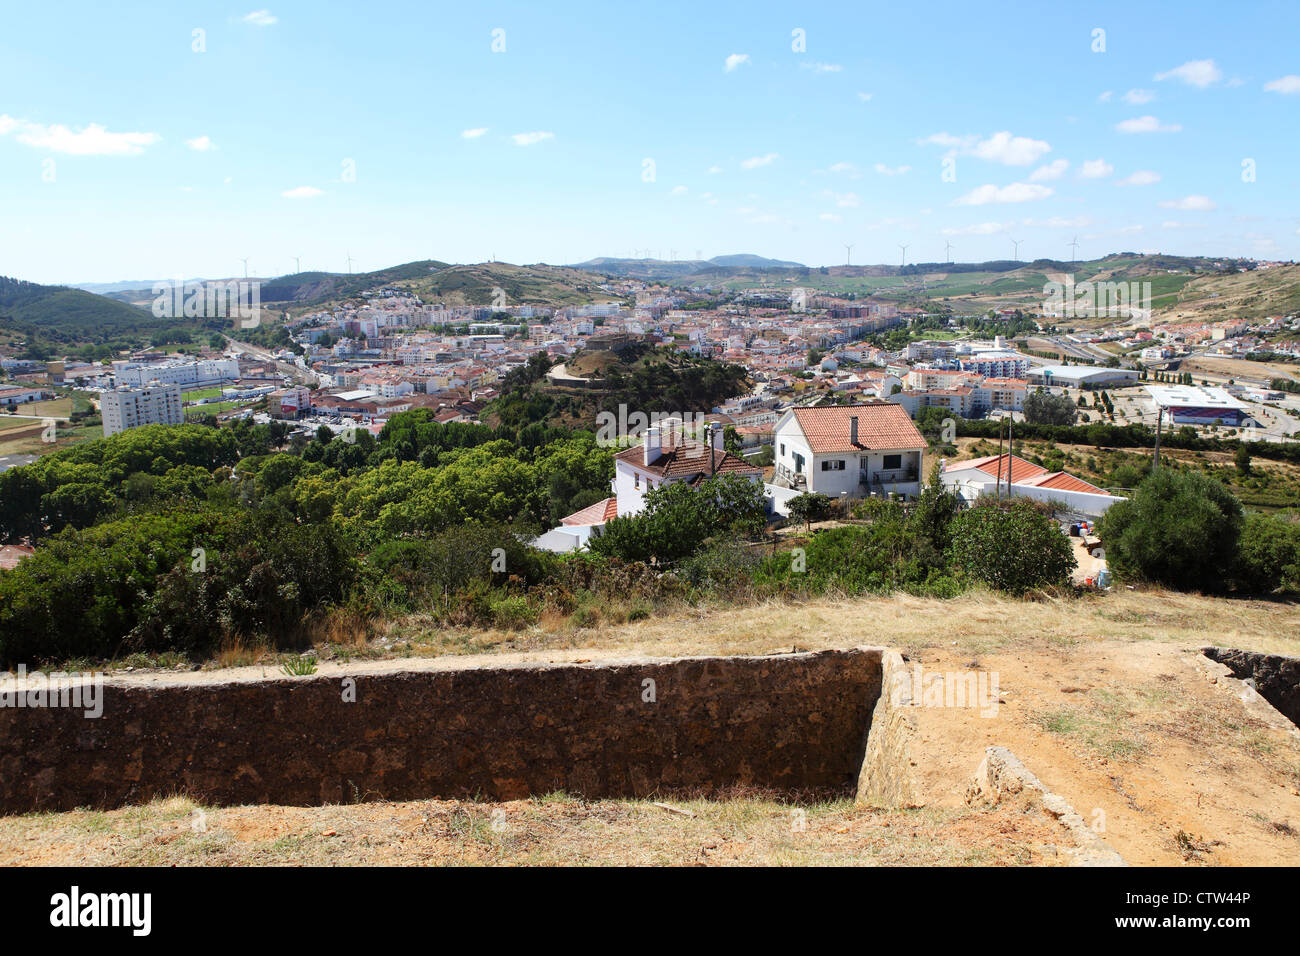 The town of Torres Vedras in Portugal. - Stock Image